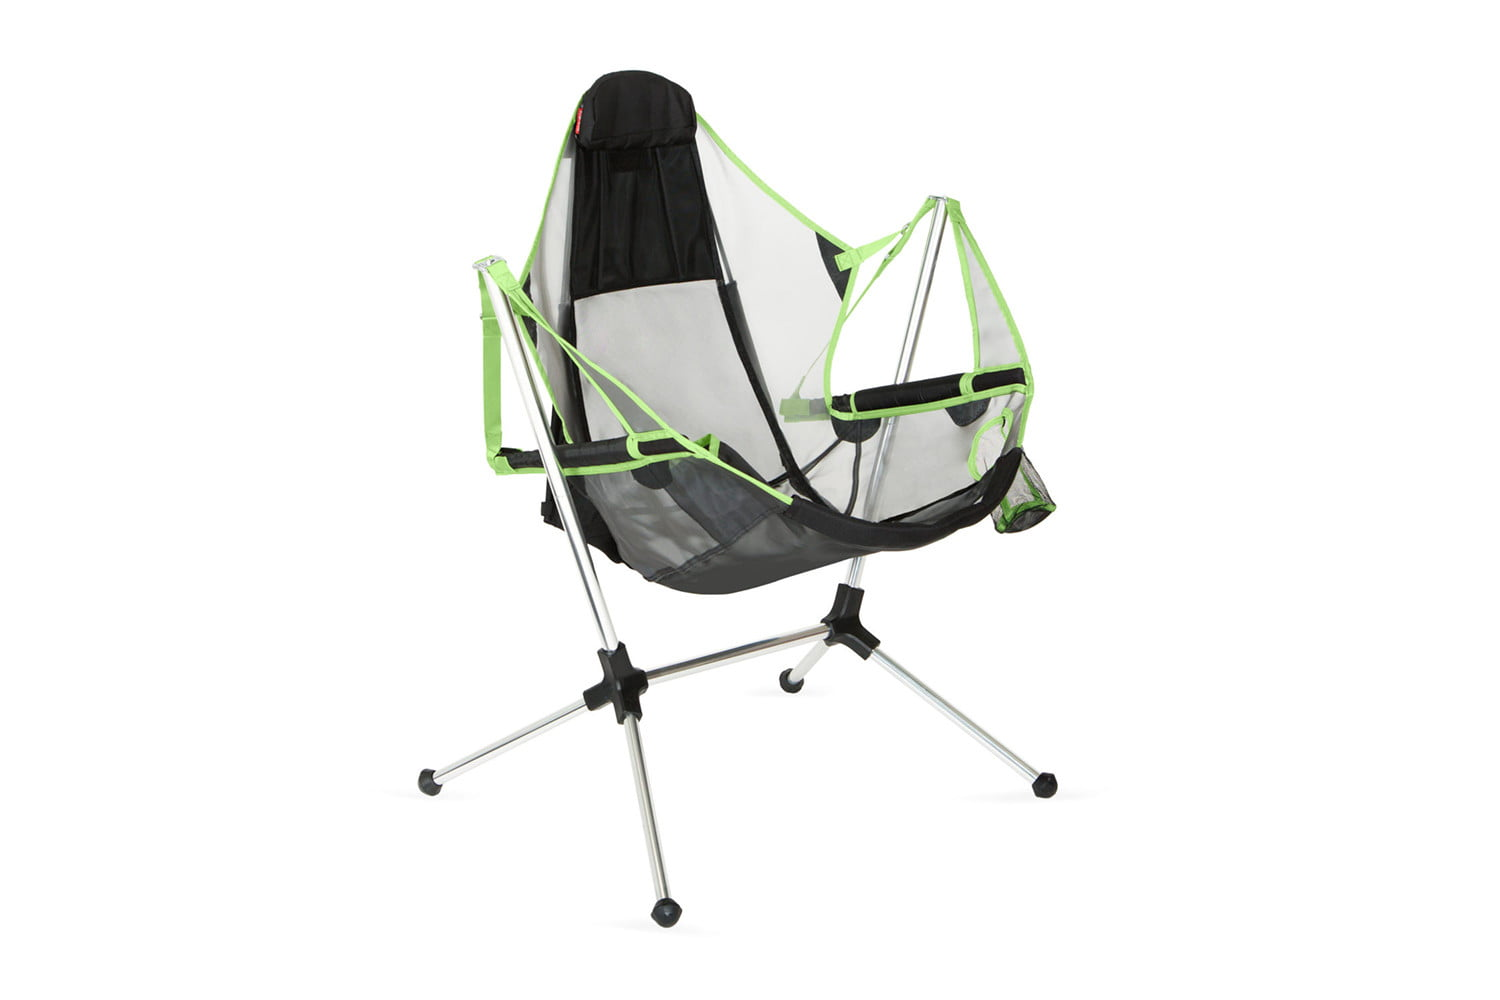 Sensational The Best Camping Chairs For 2019 Digital Trends Gmtry Best Dining Table And Chair Ideas Images Gmtryco